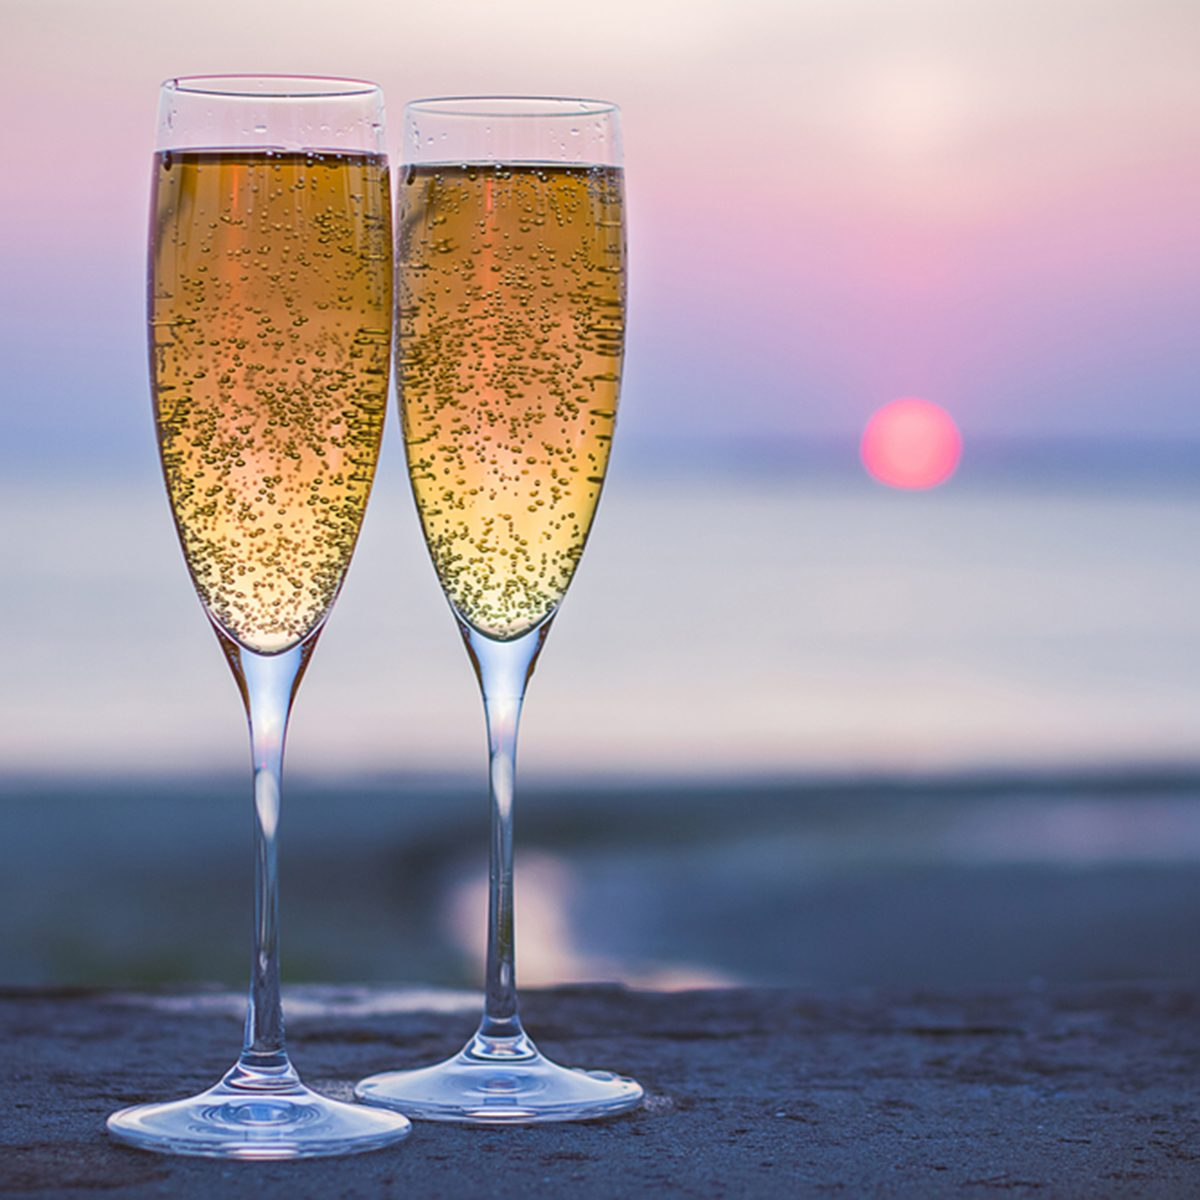 Two glasses of sparkling wine at sunset on the sea ; Shutterstock ID 213744382; Job (TFH, TOH, RD, BNB, CWM, CM): TOH